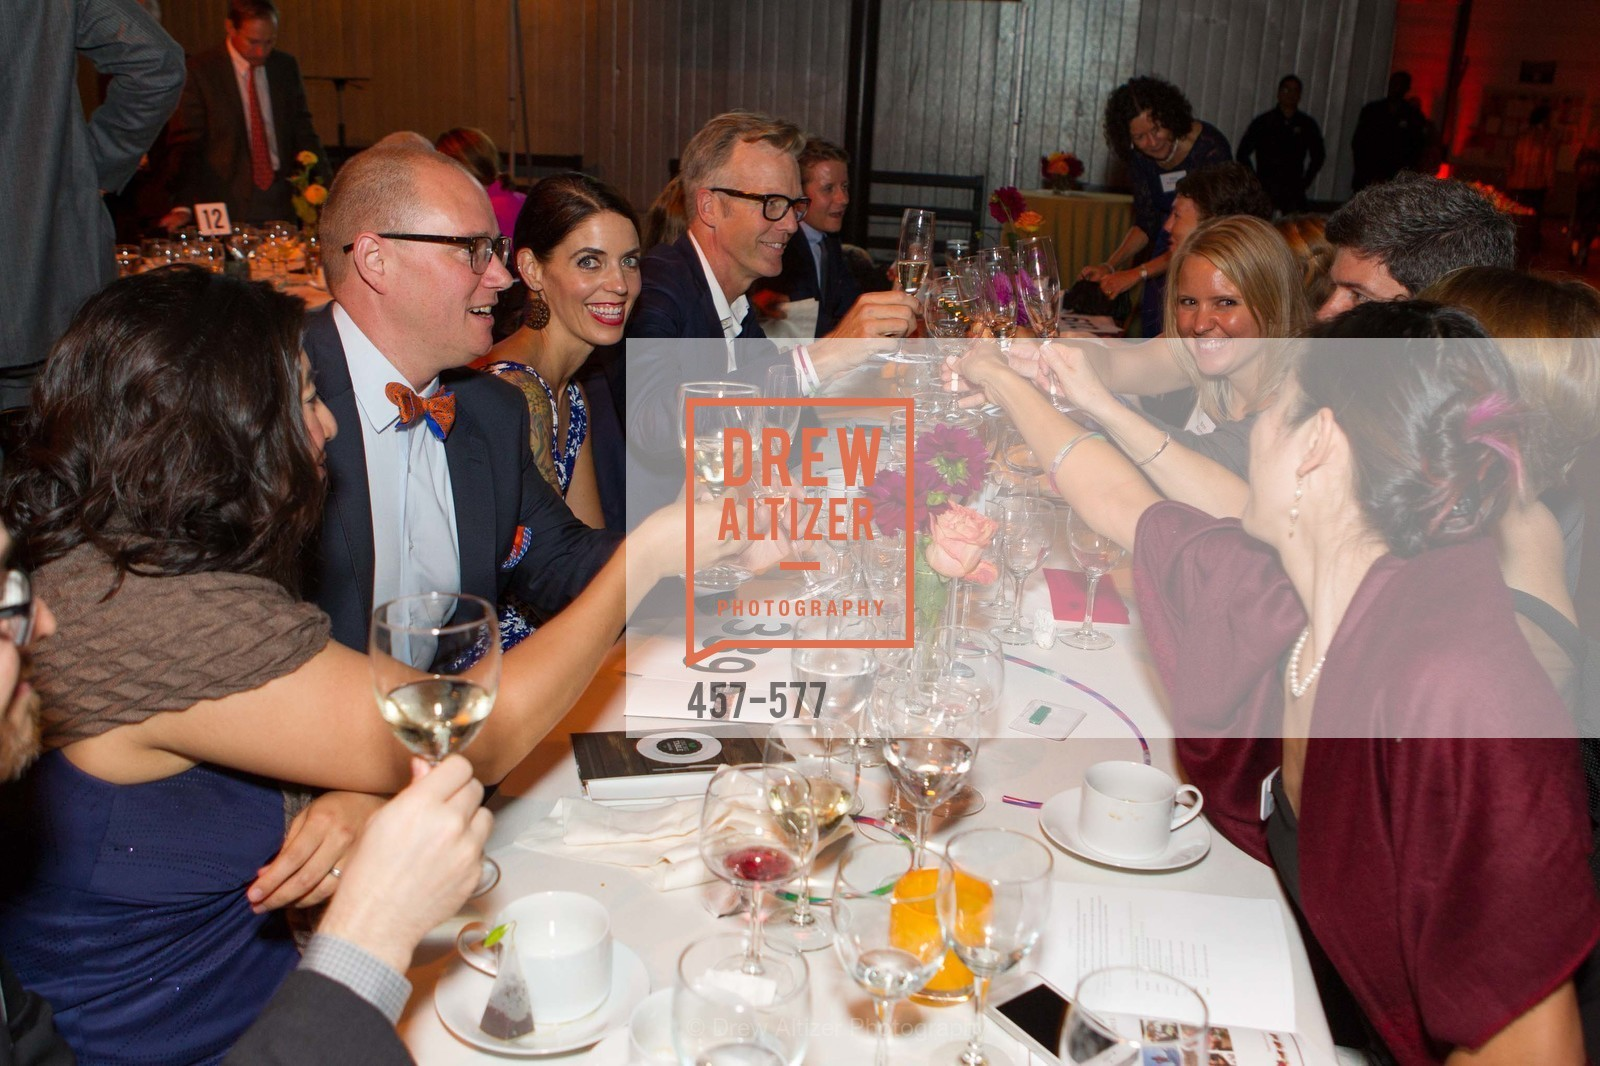 Andy Finnell, Elaine Finnell, Holly Reeves, SF-MARIN FOOD BANK One Big Table Gala, US, September 27th, 2014,Drew Altizer, Drew Altizer Photography, full-service agency, private events, San Francisco photographer, photographer california